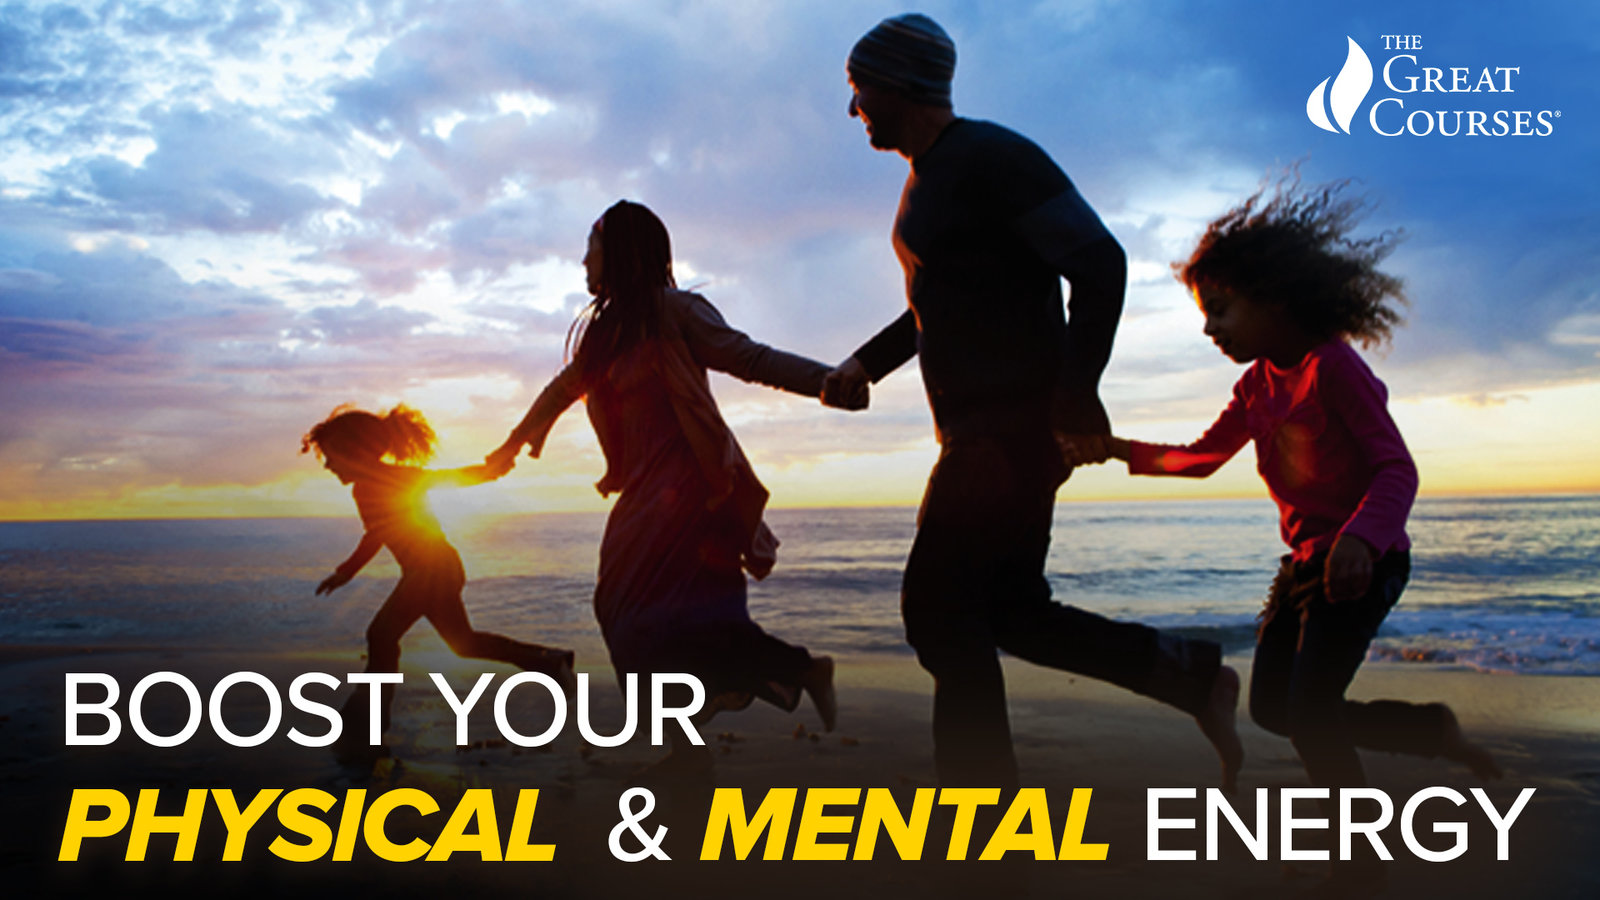 How to Boost Your Physical and Mental Energy